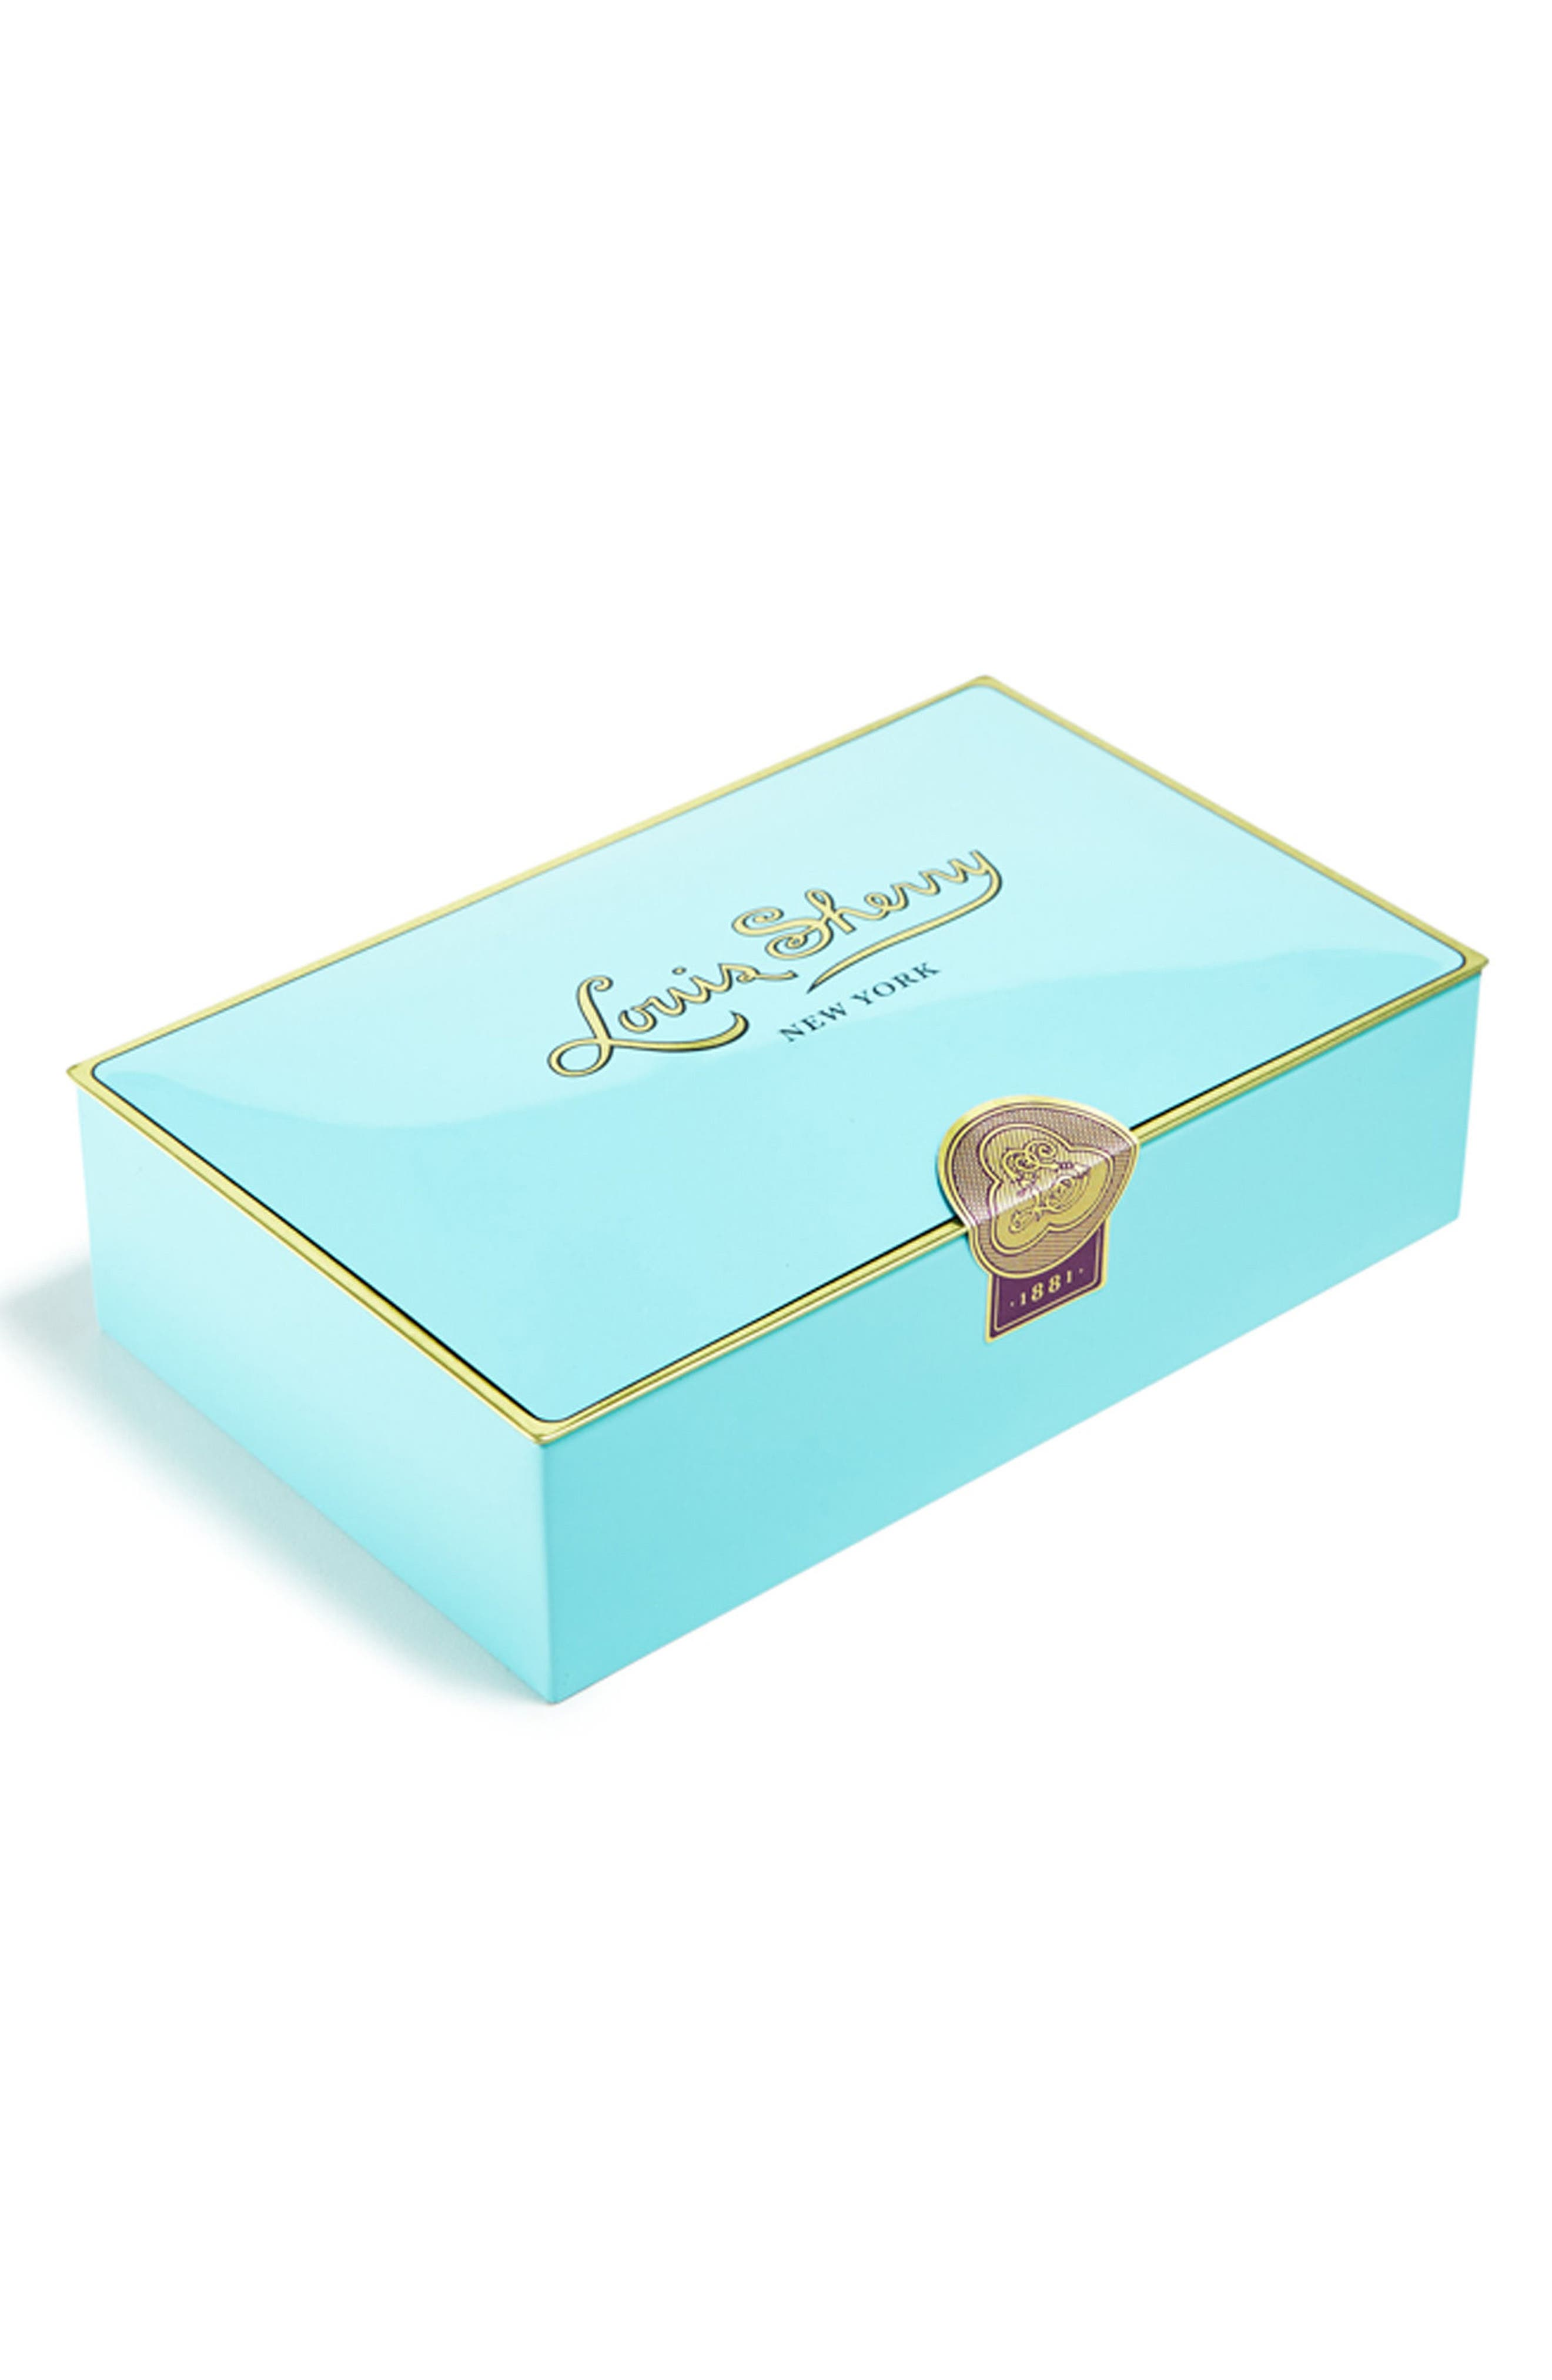 Louis Sherry 12-Piece Chocolate Truffle Tin,                             Main thumbnail 1, color,                             NILE BLUE LIGHT BLUE